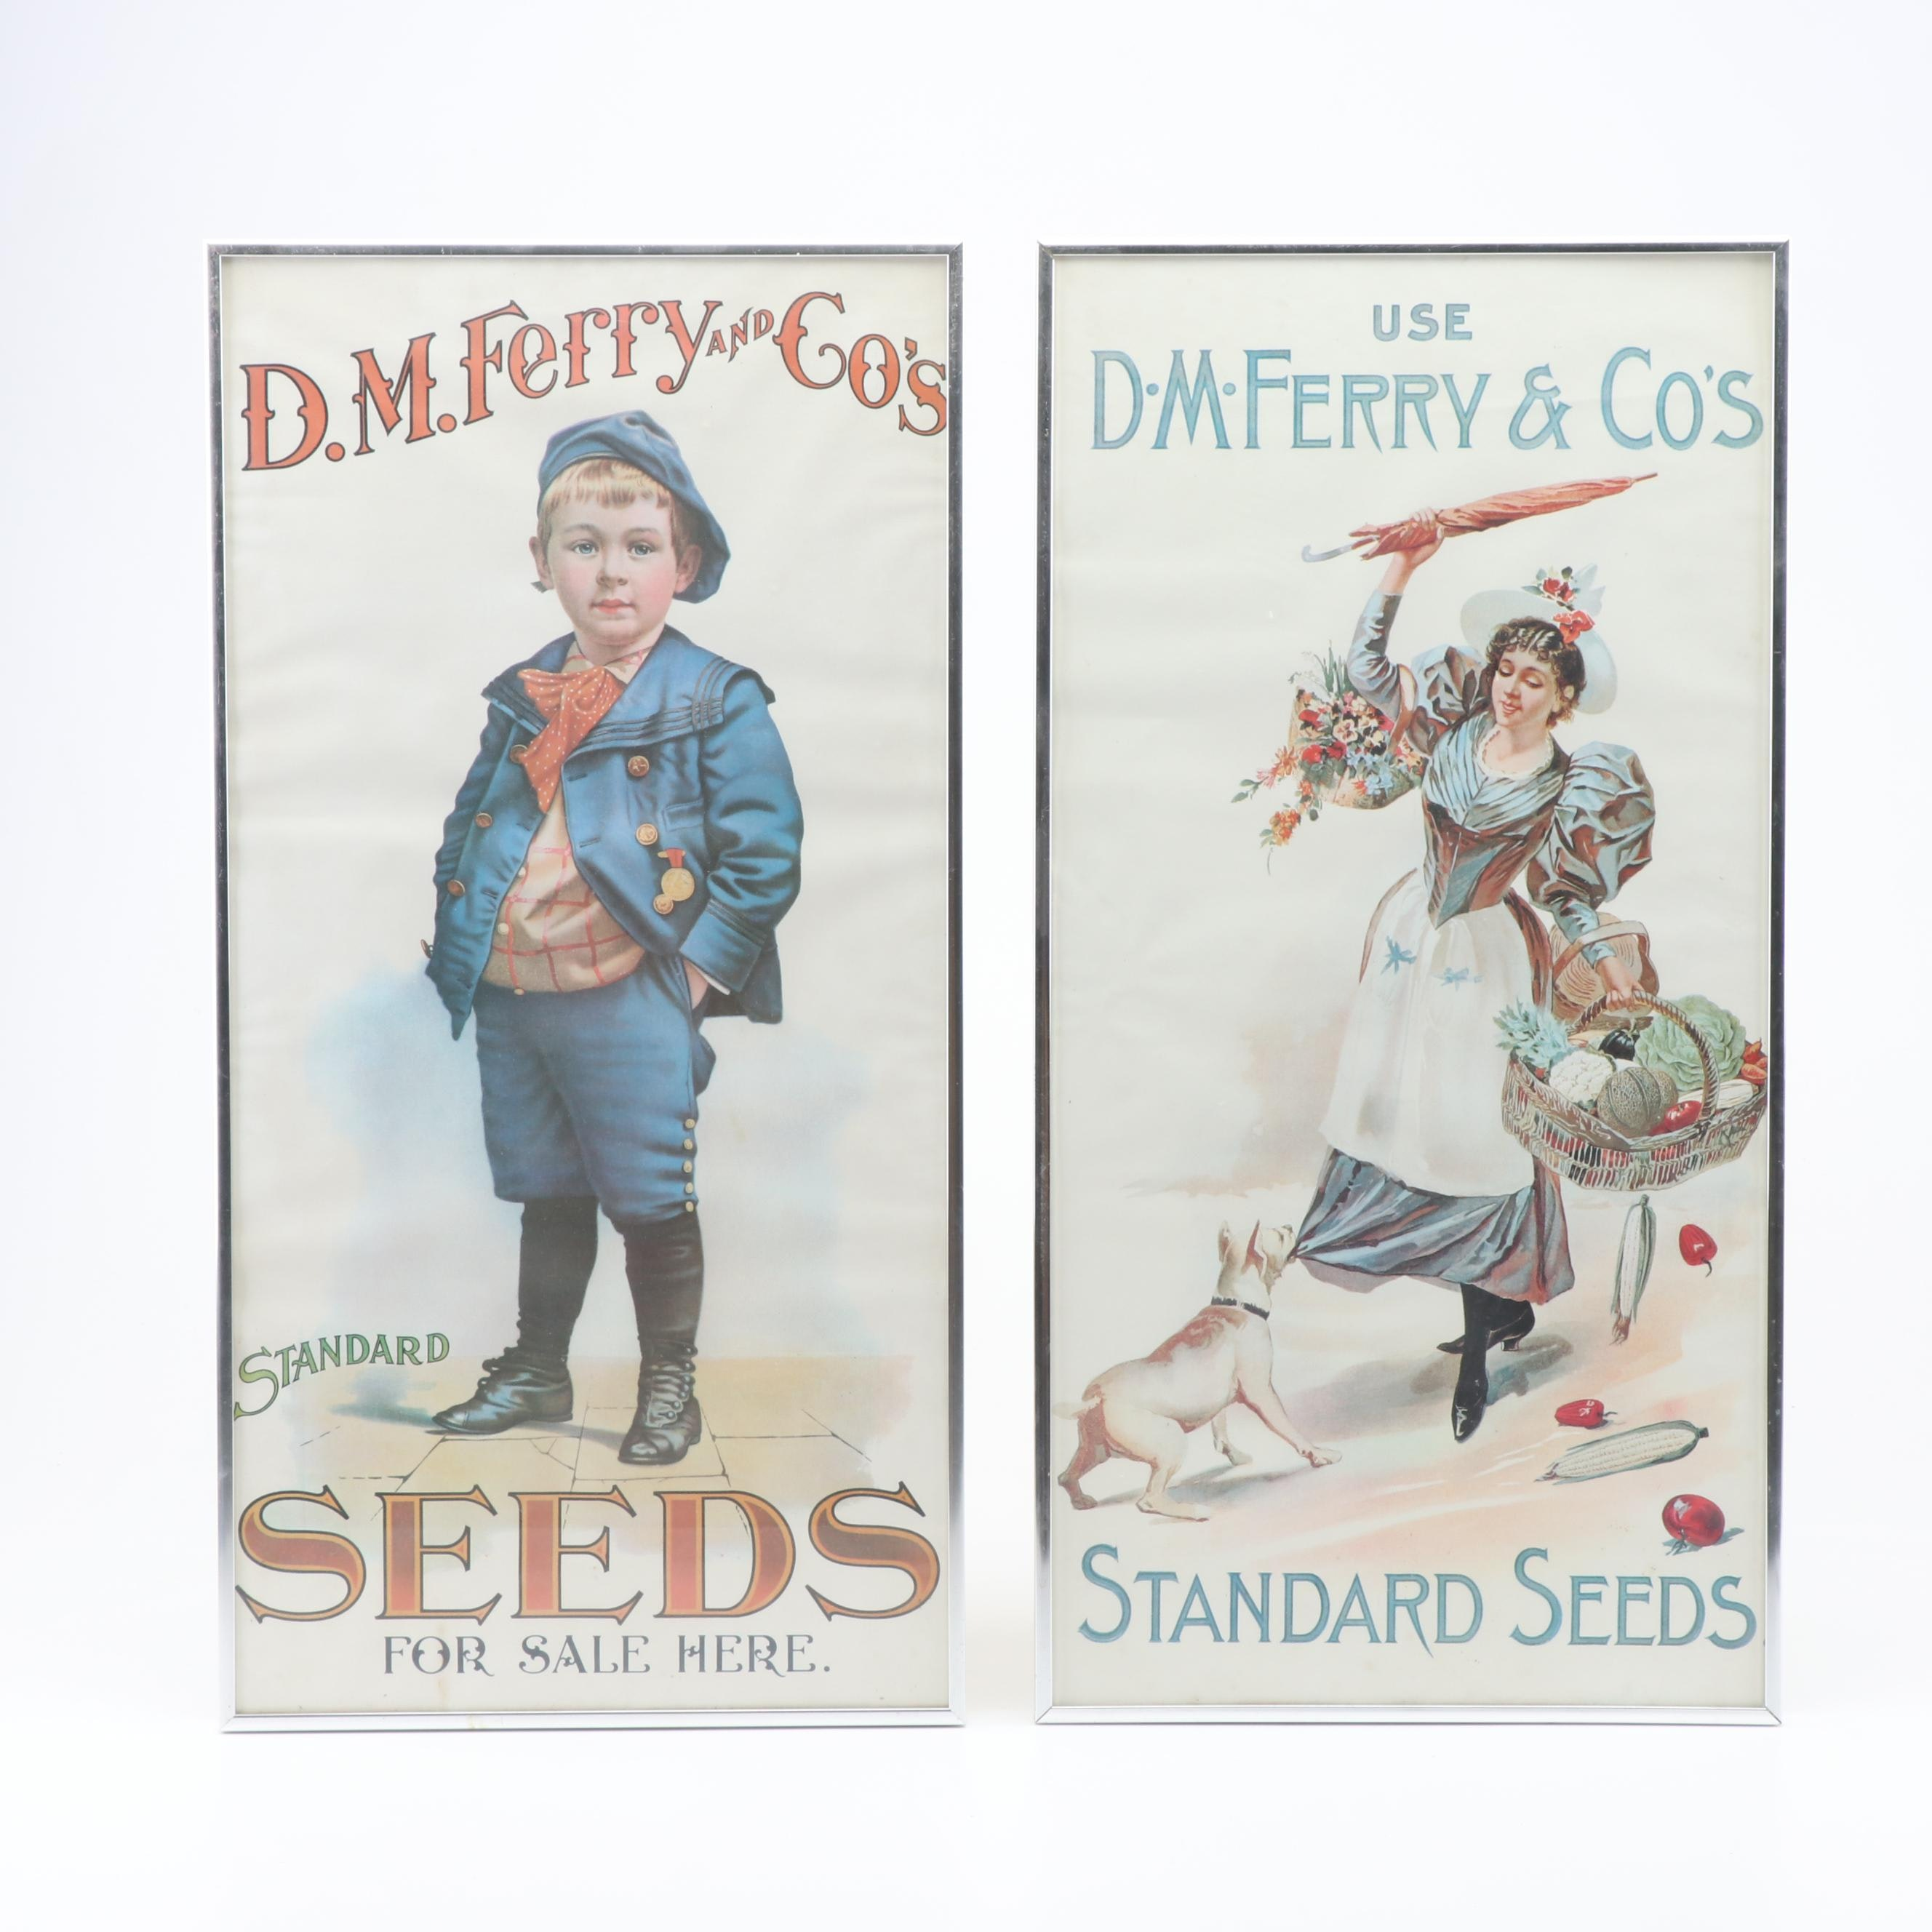 """Offset Lithographs Advertising D.M. Ferry and Co's """"Standard Seeds"""""""